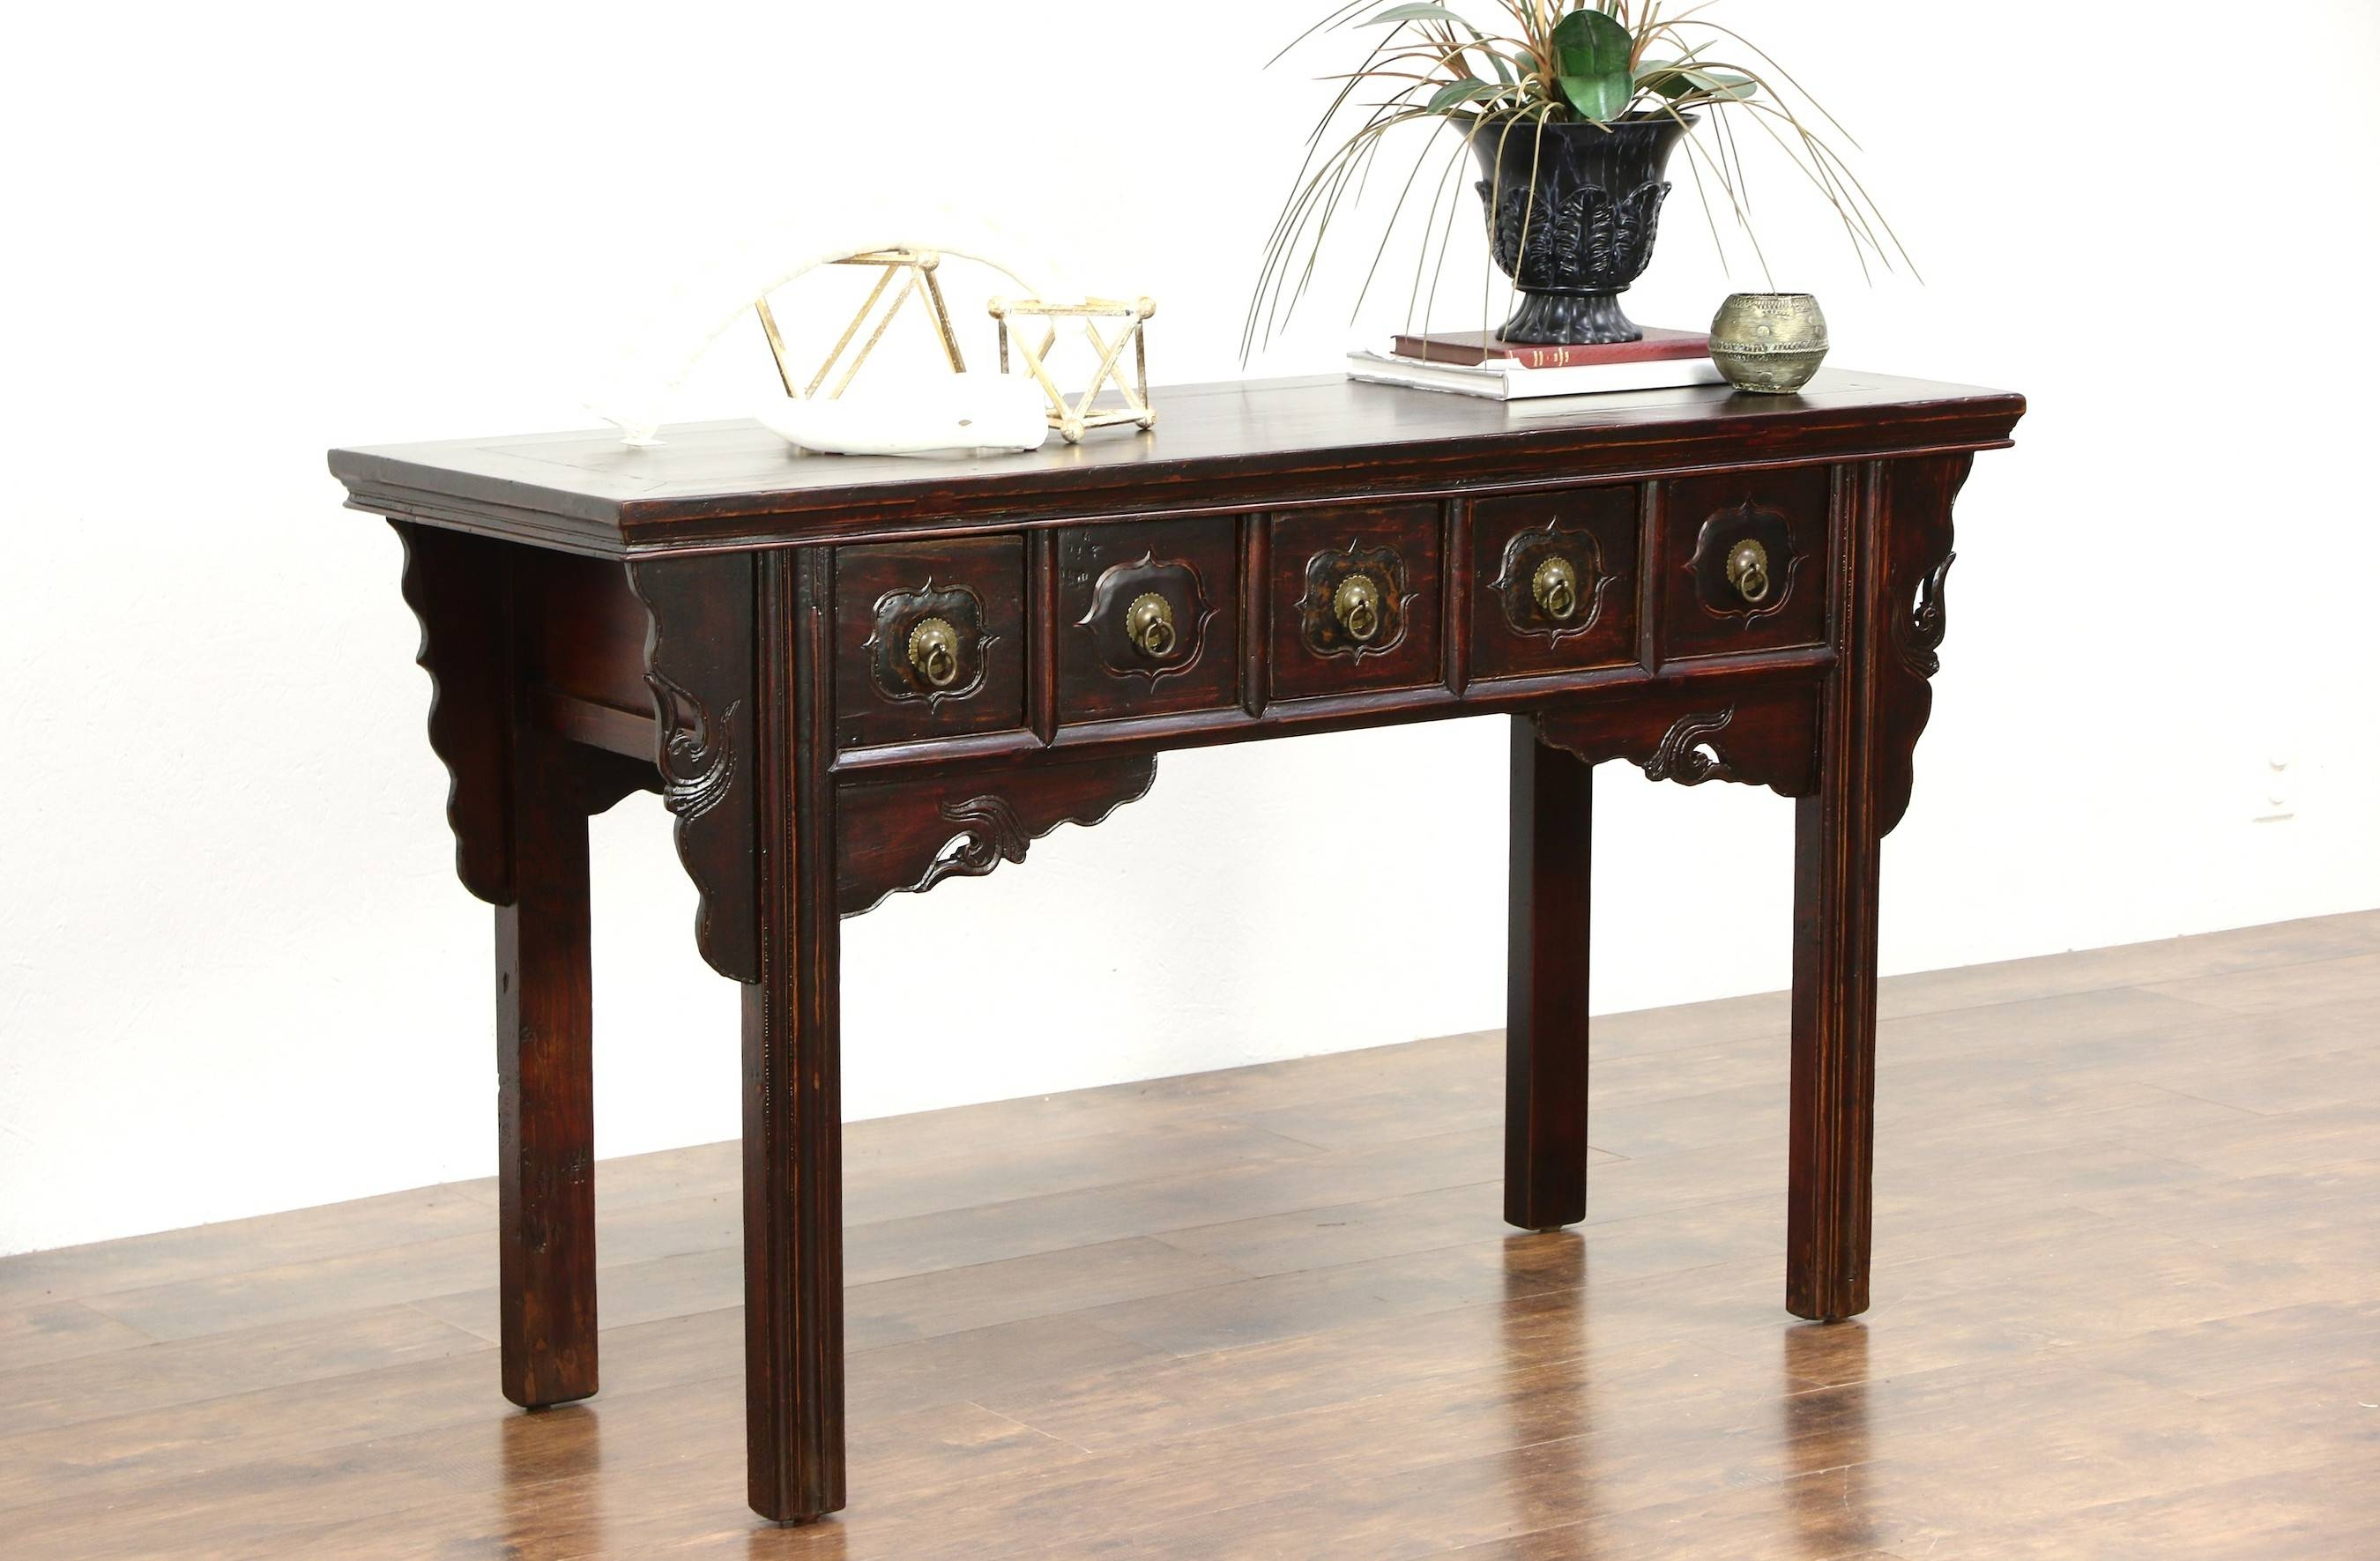 Chinese Vintage Hall Console, Sofa Or Foyer Table, Hand Painted within Asian Sofa Tables (Image 6 of 15)